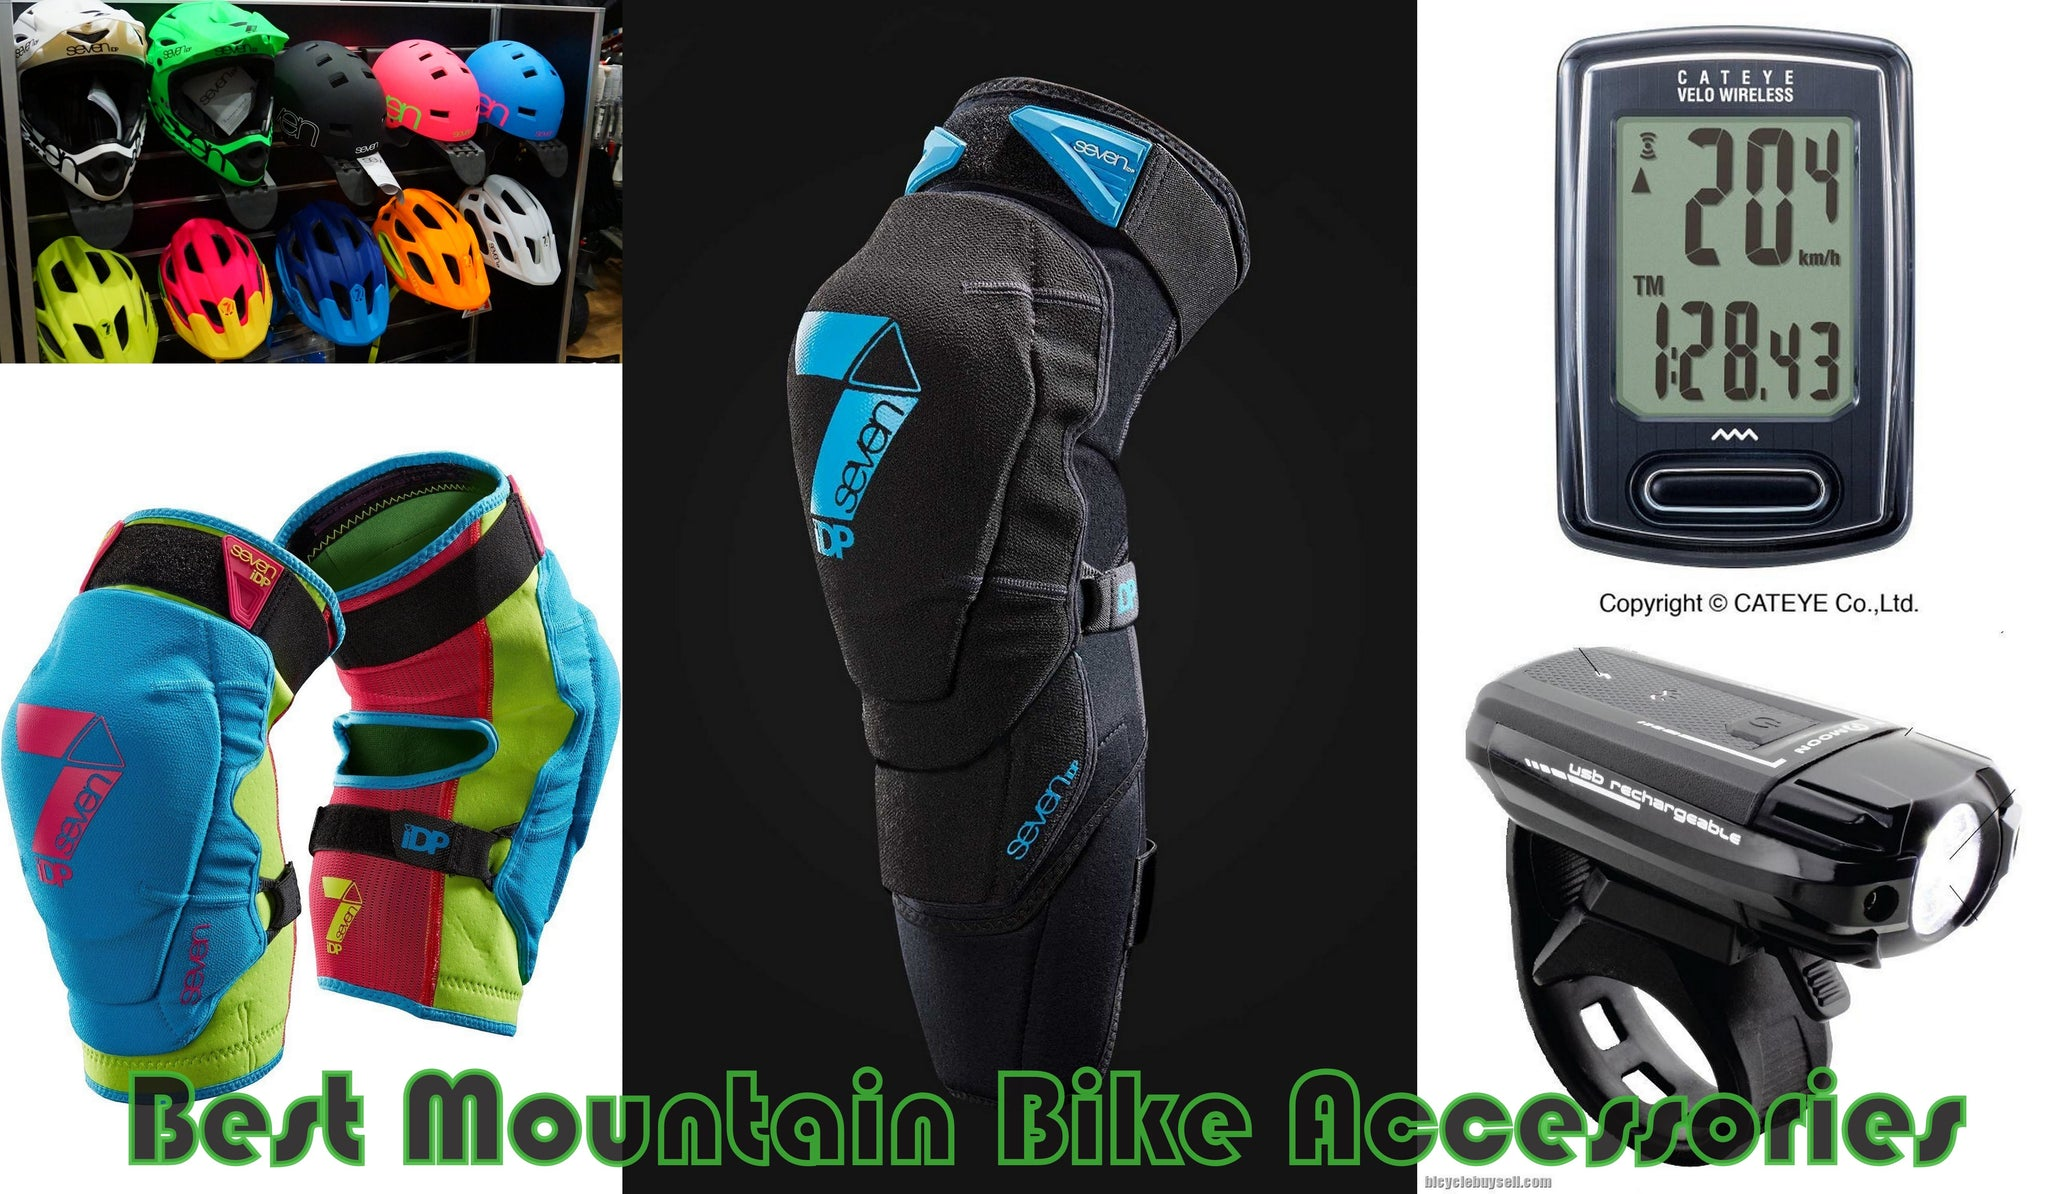 4 Best Mountain Bike Accessories In Singapore